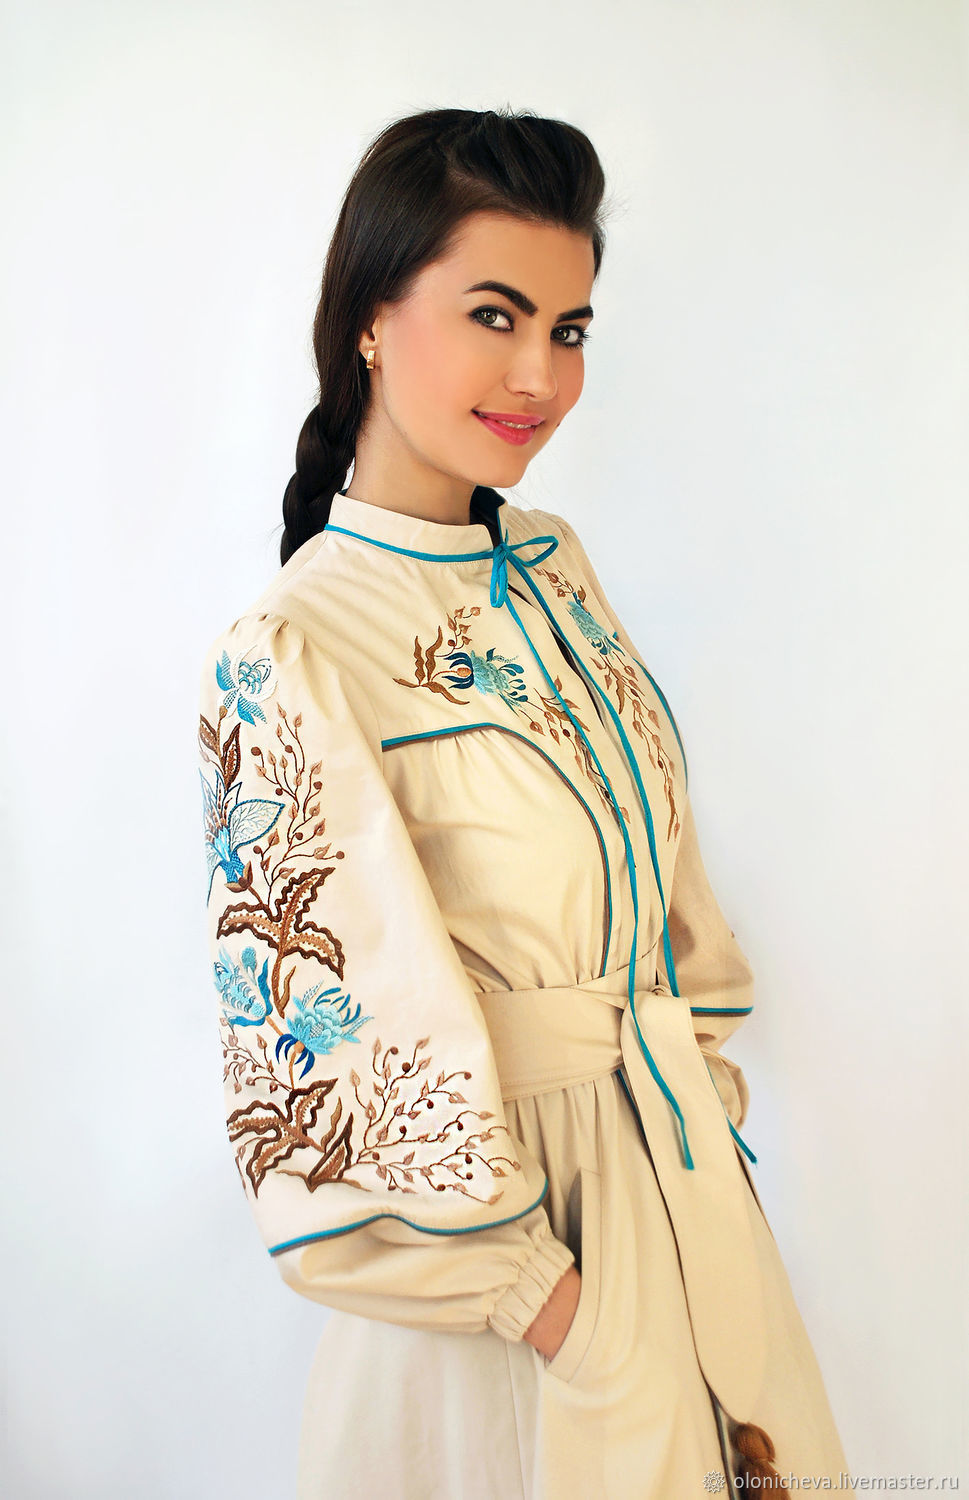 Luxurious dress in ethnic style 'Turquoise' hand embroidery, Dresses, Vinnitsa,  Фото №1